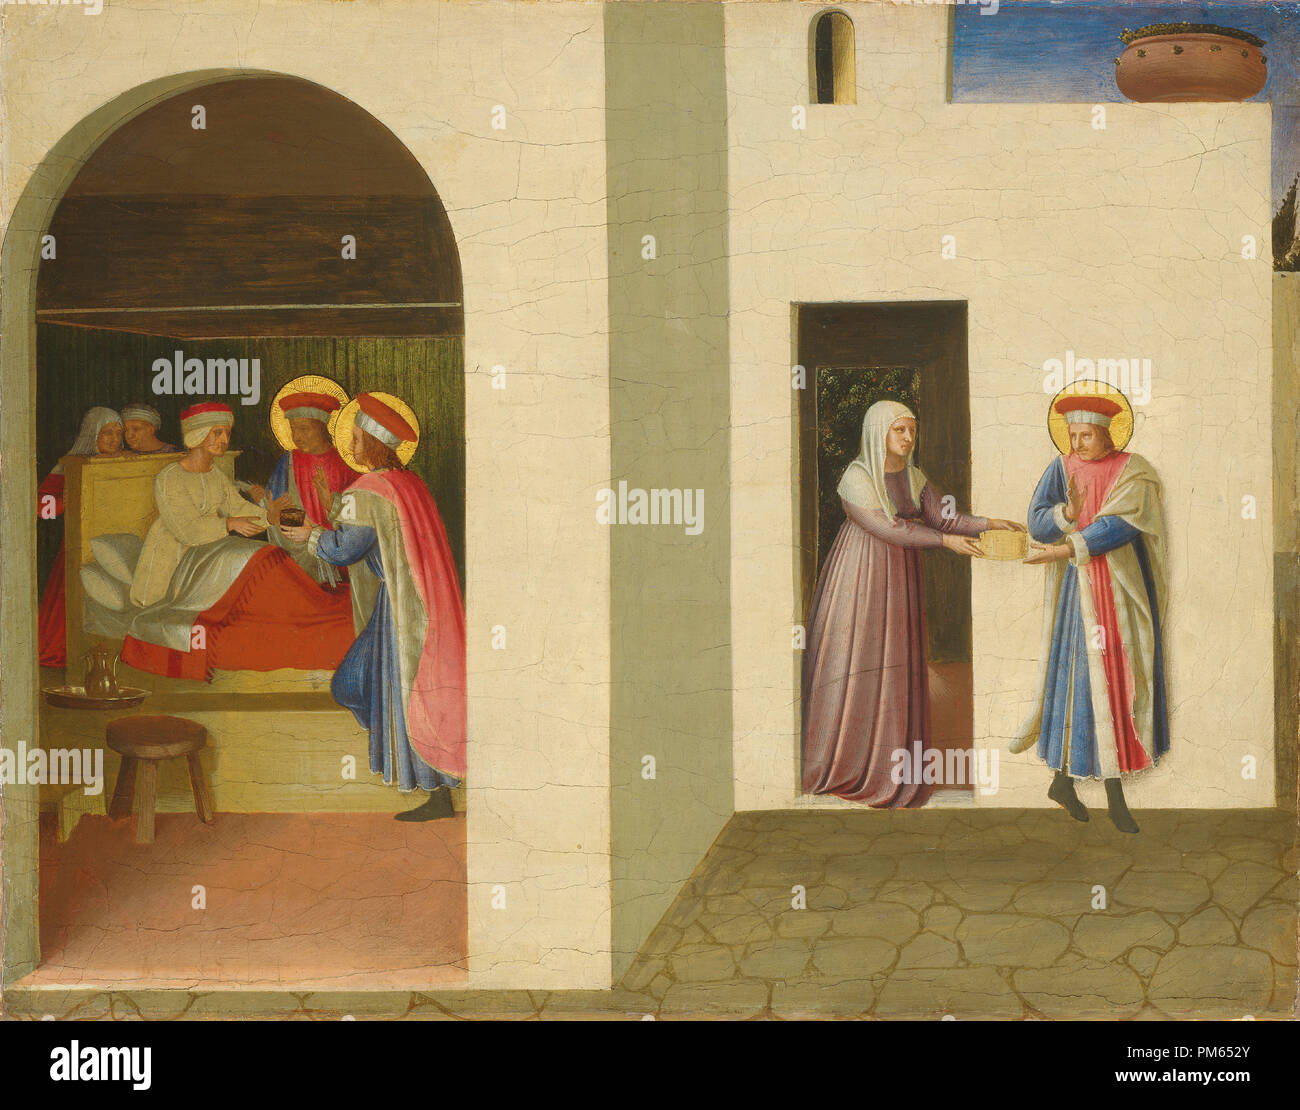 The Healing of Palladia by Saint Cosmas and Saint Damian. Dated: c. 1438/1440. Dimensions: painted surface: 36.2 x 46.3 cm (14 1/4 x 18 1/4 in.)  support: 38.1 x 47.5 cm (15 x 18 11/16 in.)  framed: 49.5 x 60.3 x 5.1 cm (19 1/2 x 23 3/4 x 2 in.). Medium: tempera (and oil?) on panel. Museum: National Gallery of Art, Washington DC. Author: FRA ANGELICO. - Stock Image